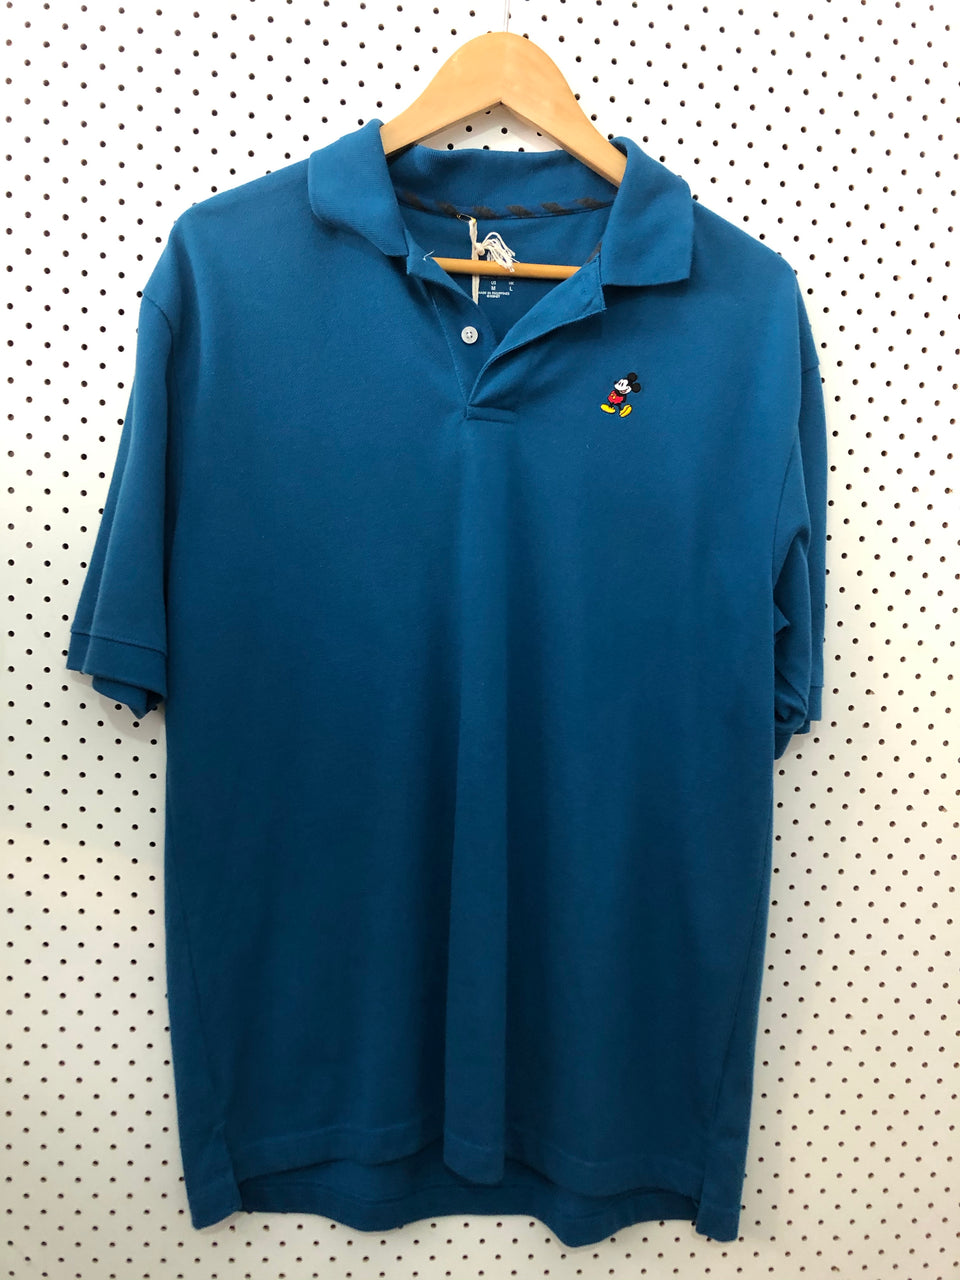 0211 Disney polo shirt